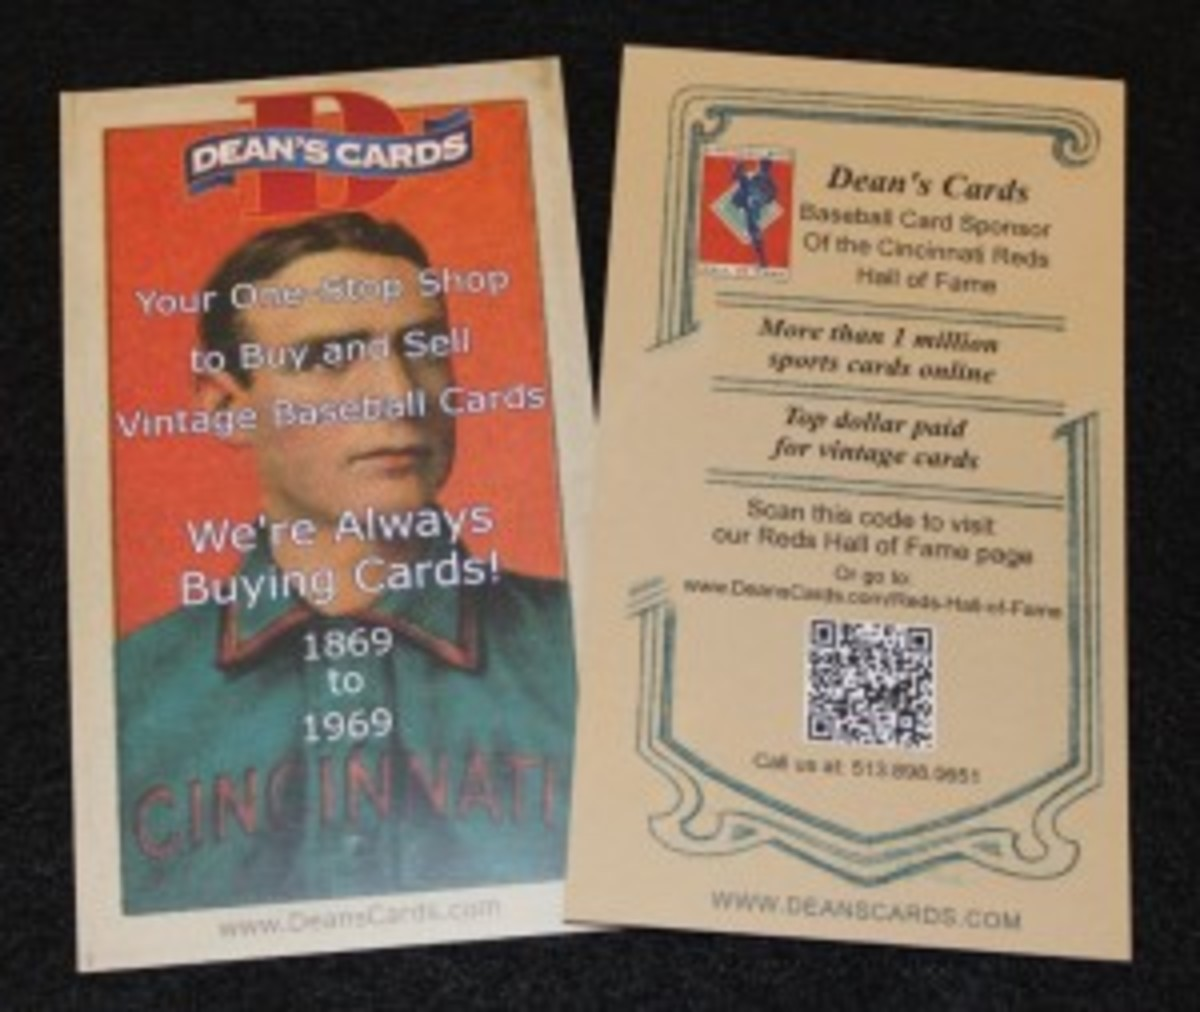 A handout given with each purchase at the HOF directing customers to Dean's Cards.